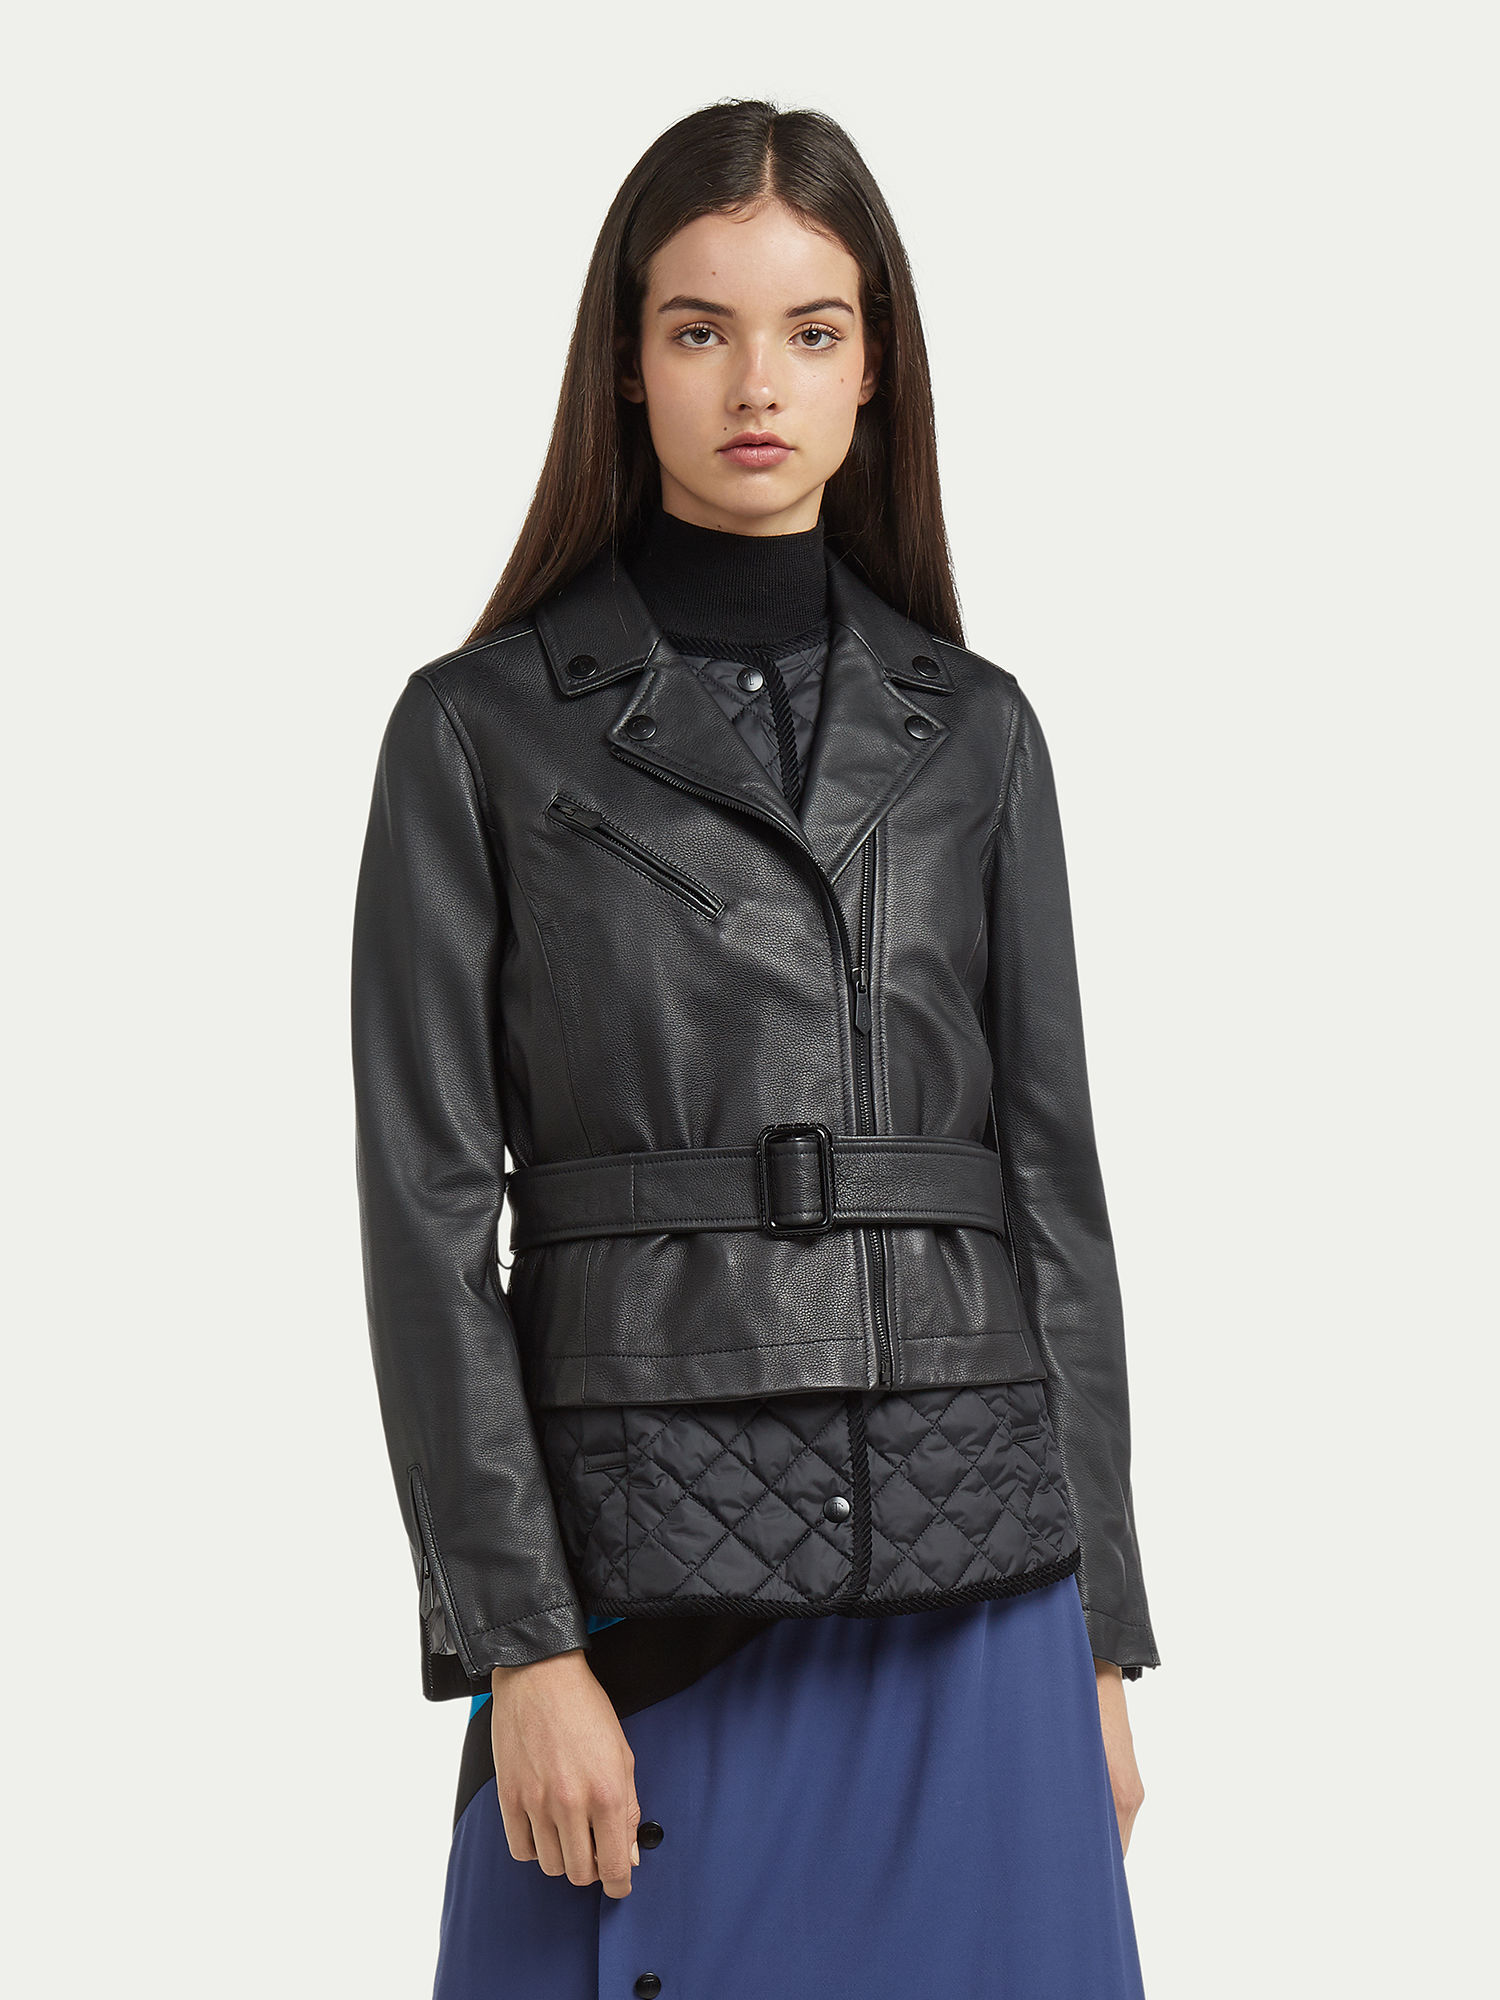 c33e8289d05 Hammered-leather-biker-jacket -with-double-quilting TRUSSARDI 50 01 8057735780211 F.jpg